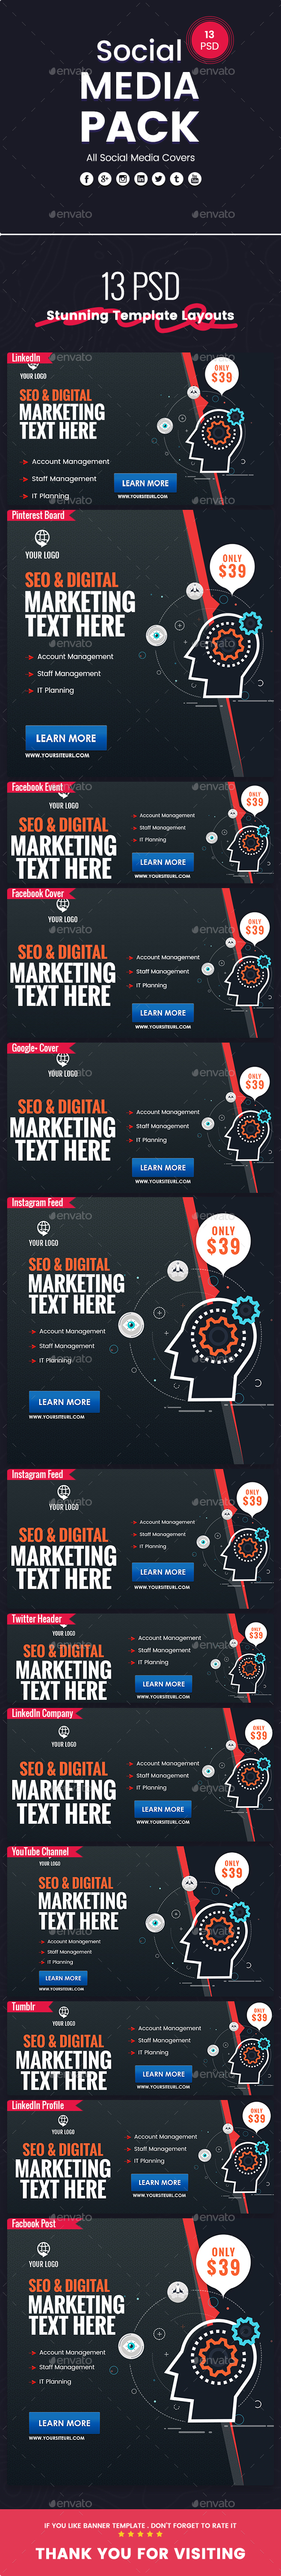 Seo & Digital Marketing - Social Media Pack - Miscellaneous Social Media